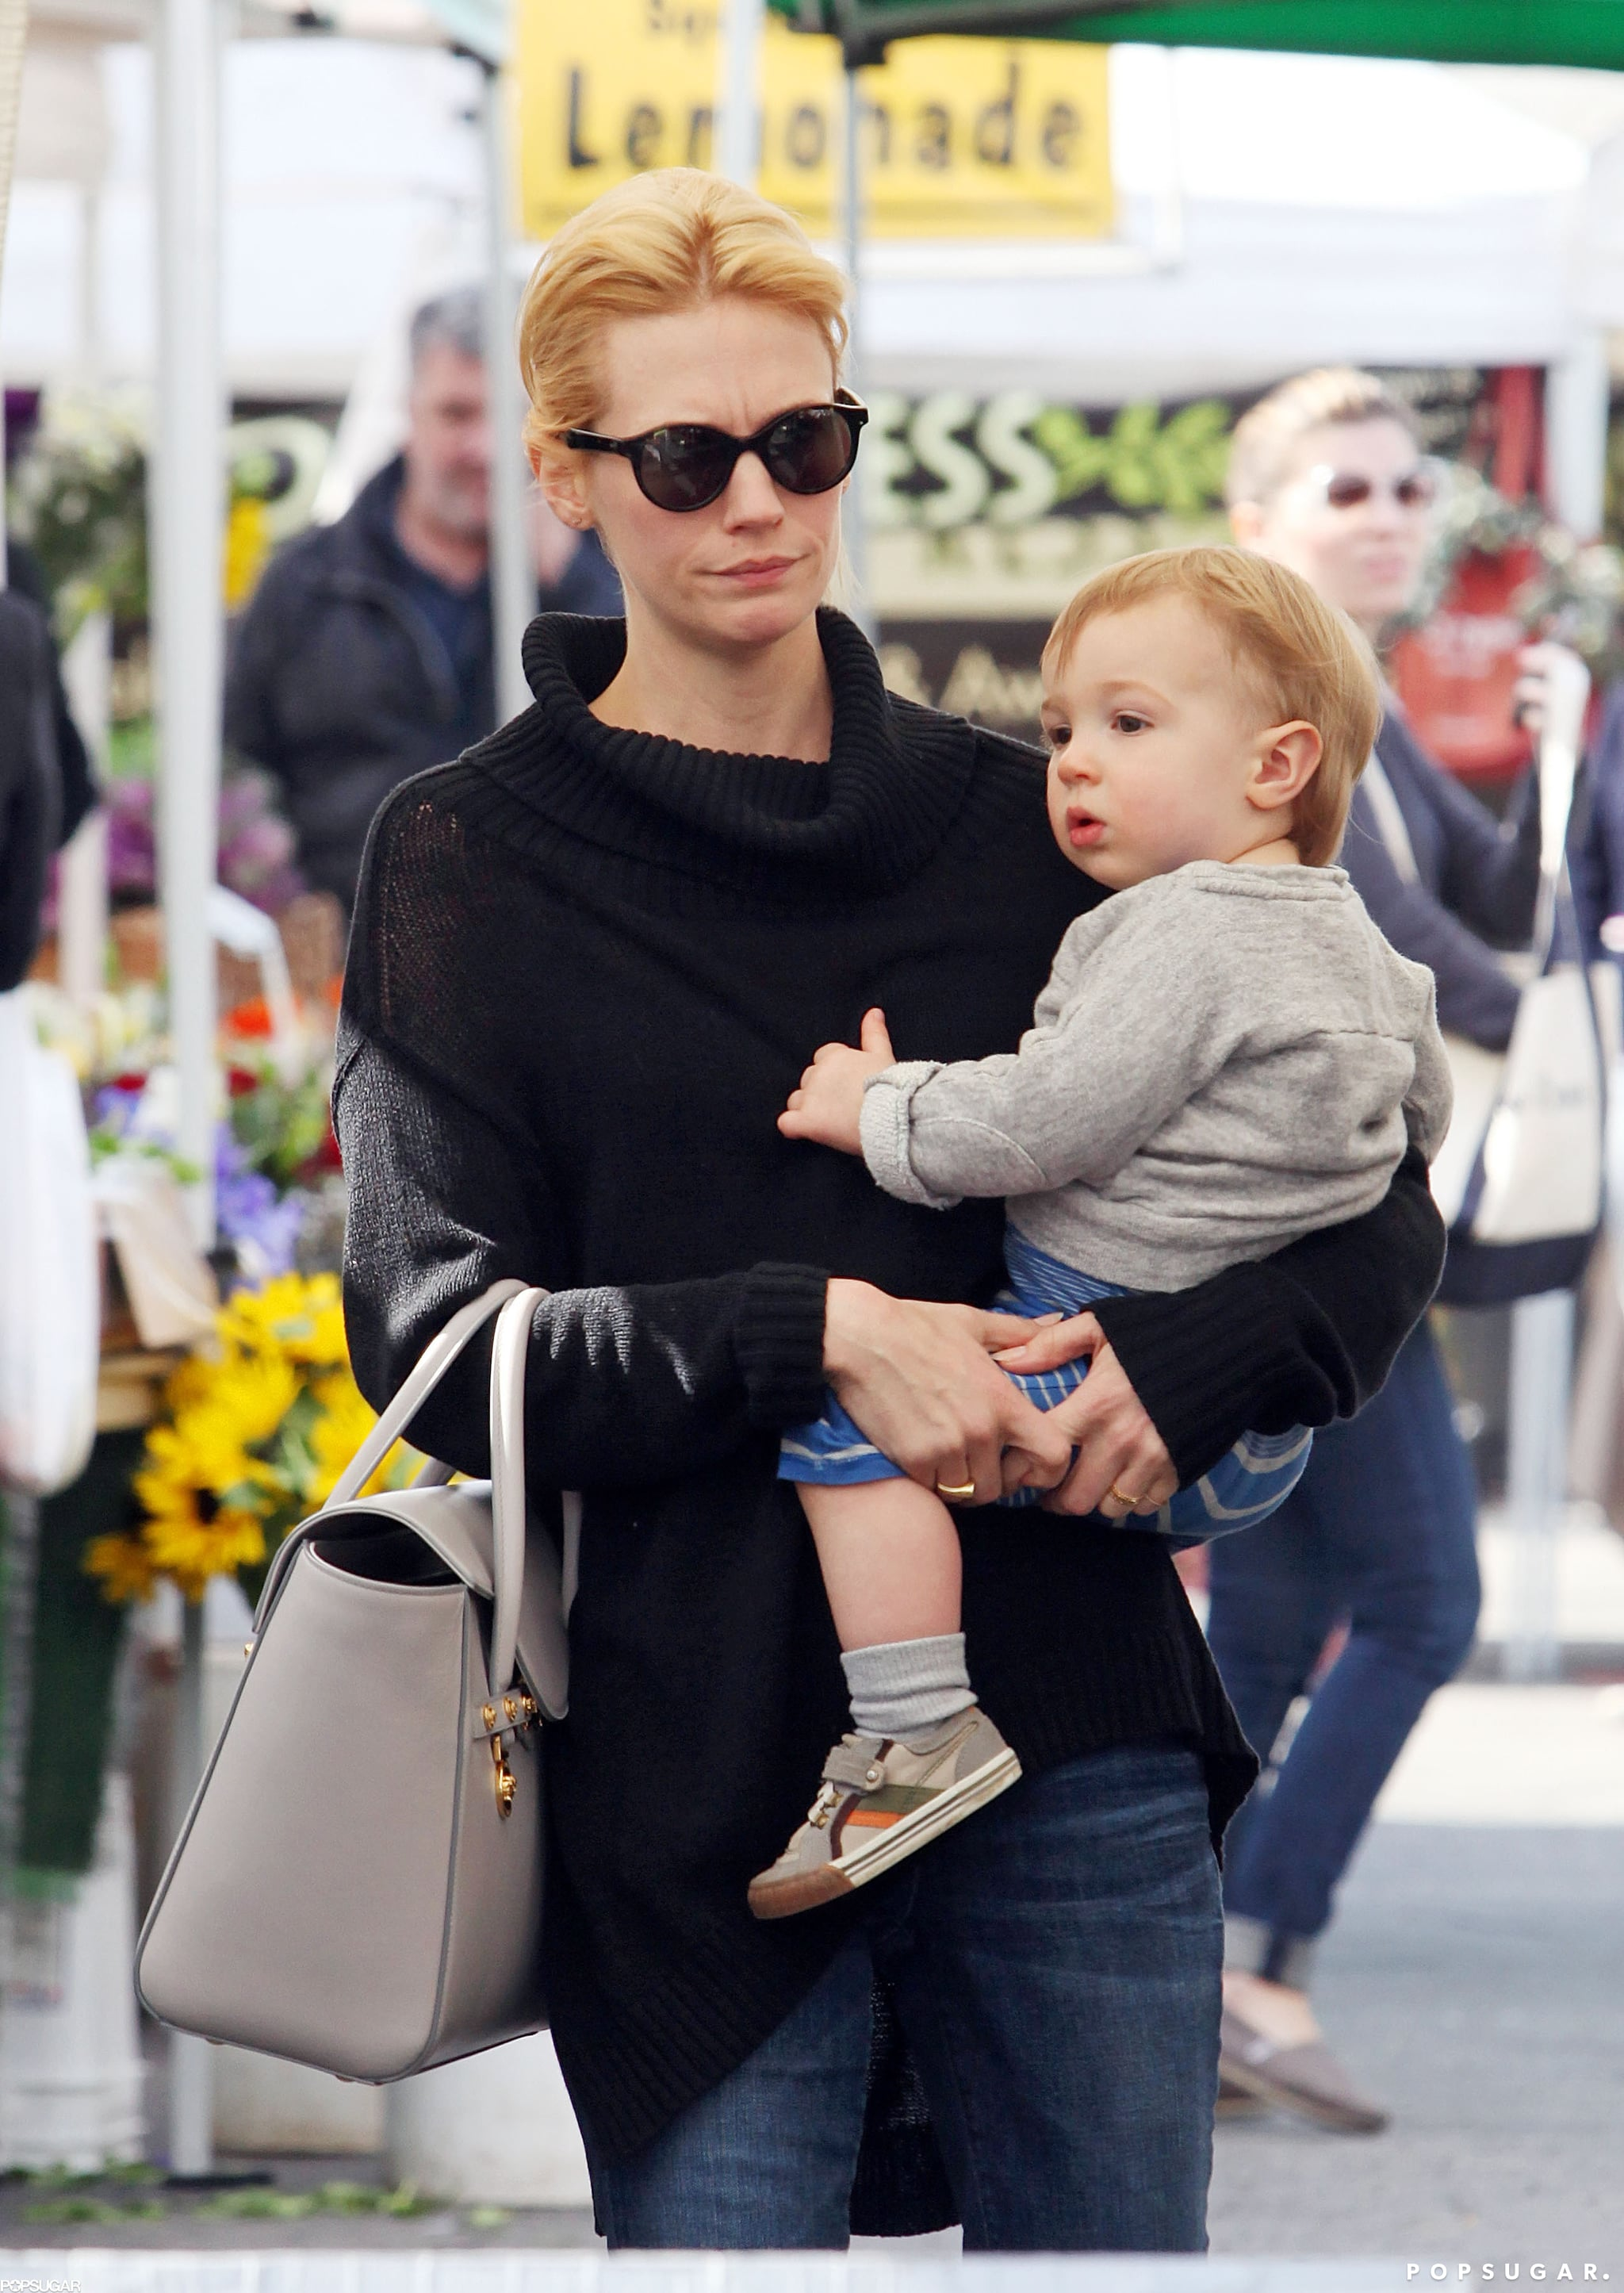 January Jones stopped by an LA farmers market with son Xander Jones.